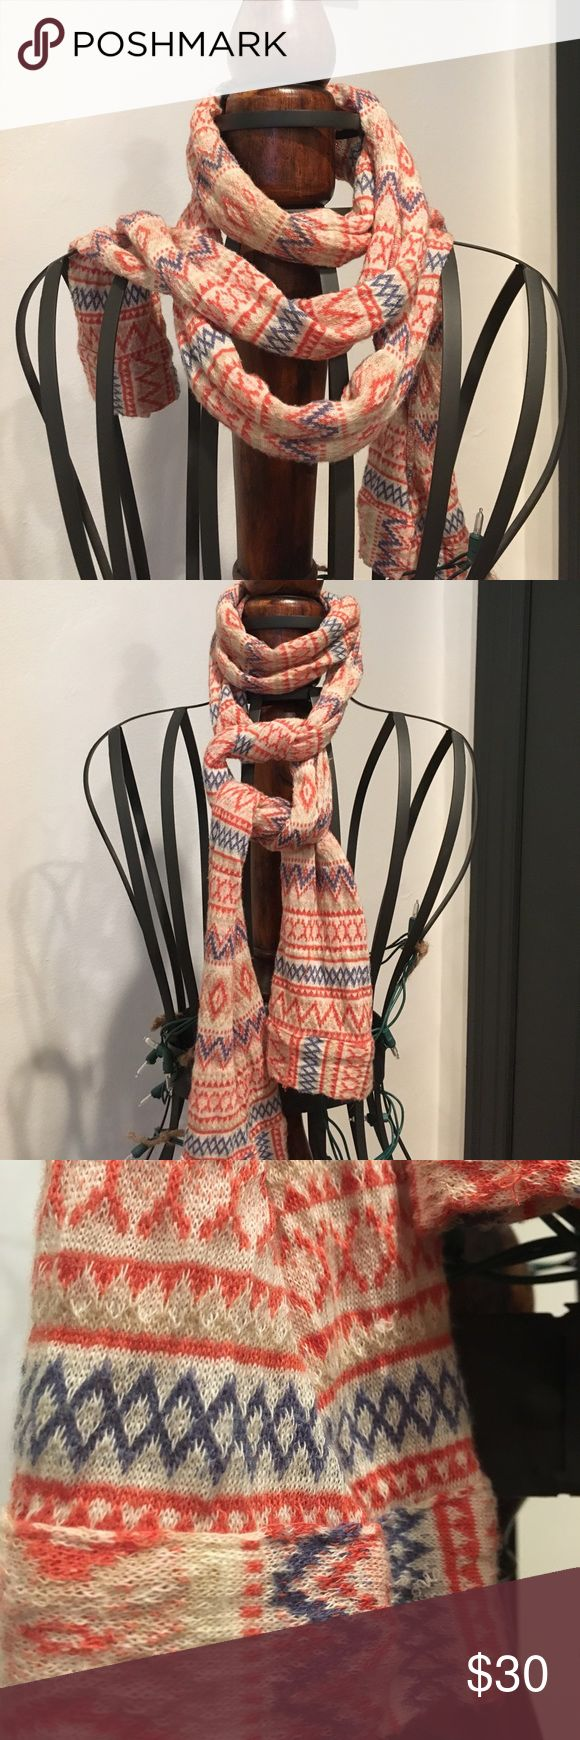 Erica Tanov Made in San Francisco Scarf www.ericatanov.com  Unique,handmade, well designed and a dedication to the finest fabrics, is what makes Erica Tanovs collections a must have! Hard to find items since she only has a few stores. Located in California and online. Erica Tanov Accessories Scarves & Wraps